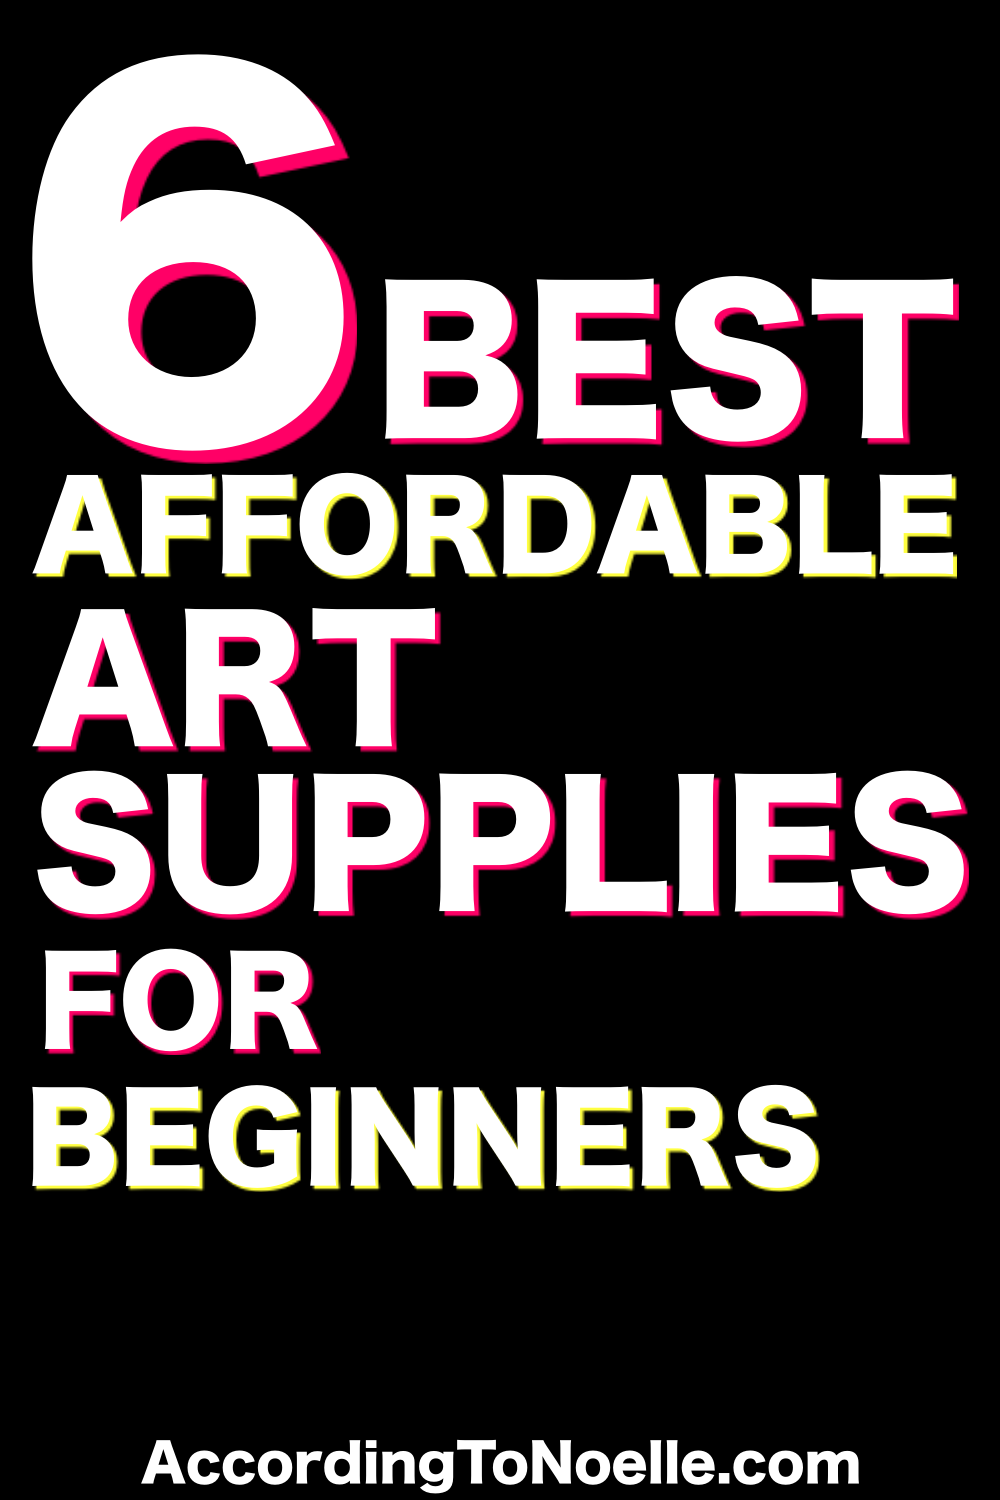 Best Affordable Art Supplies for Beginners